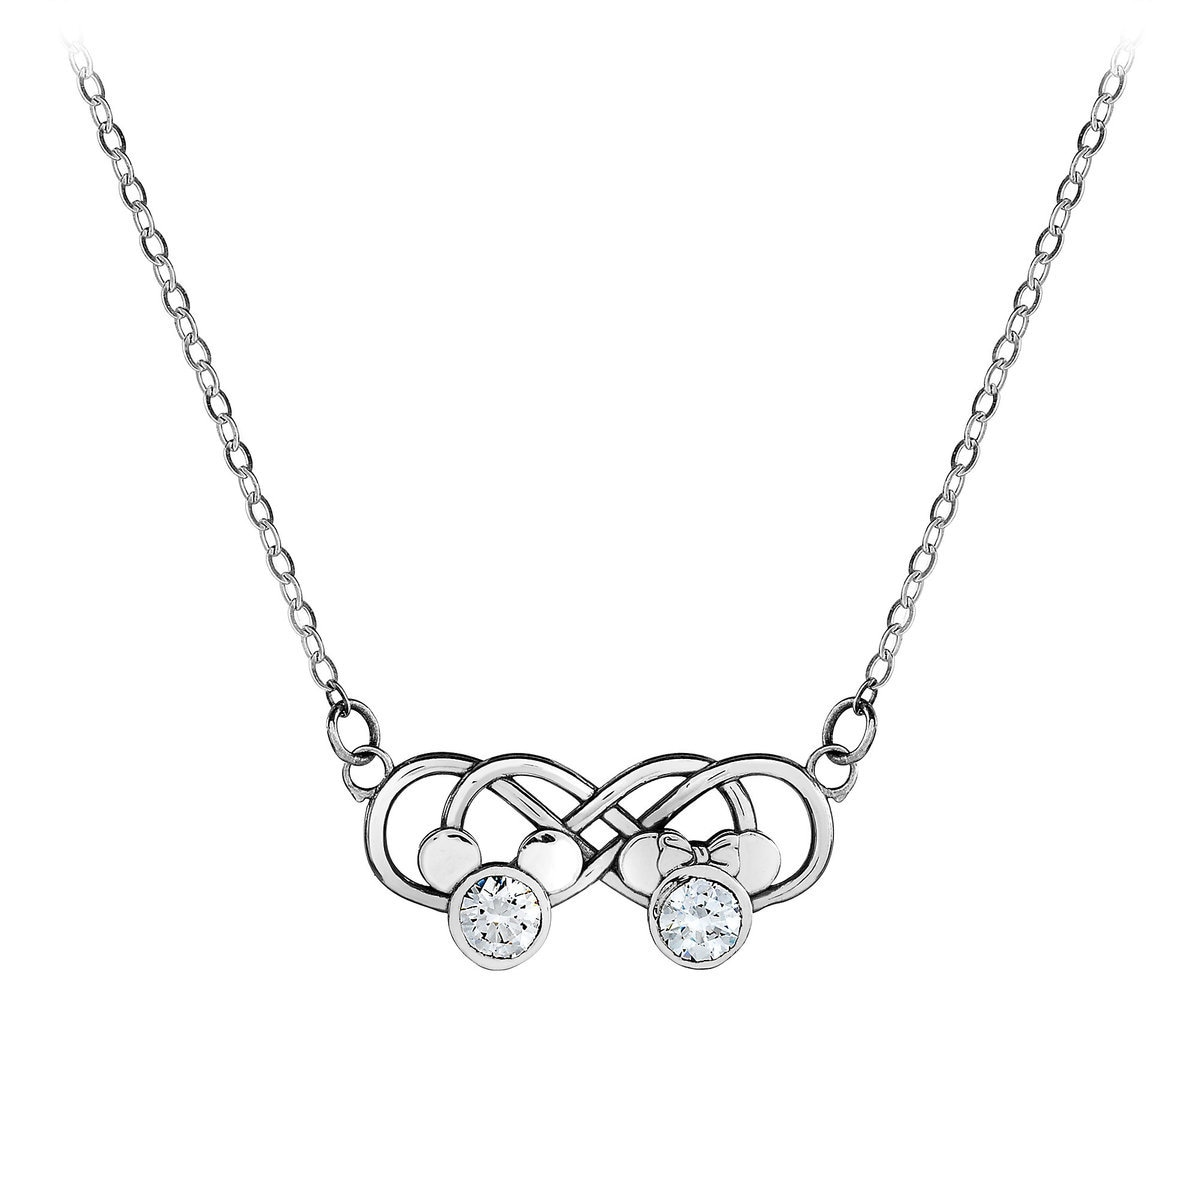 tiffany cb infinity necklace jewelry sign pendants bracelets necklaces collections co ca tiffanyinfinity rings